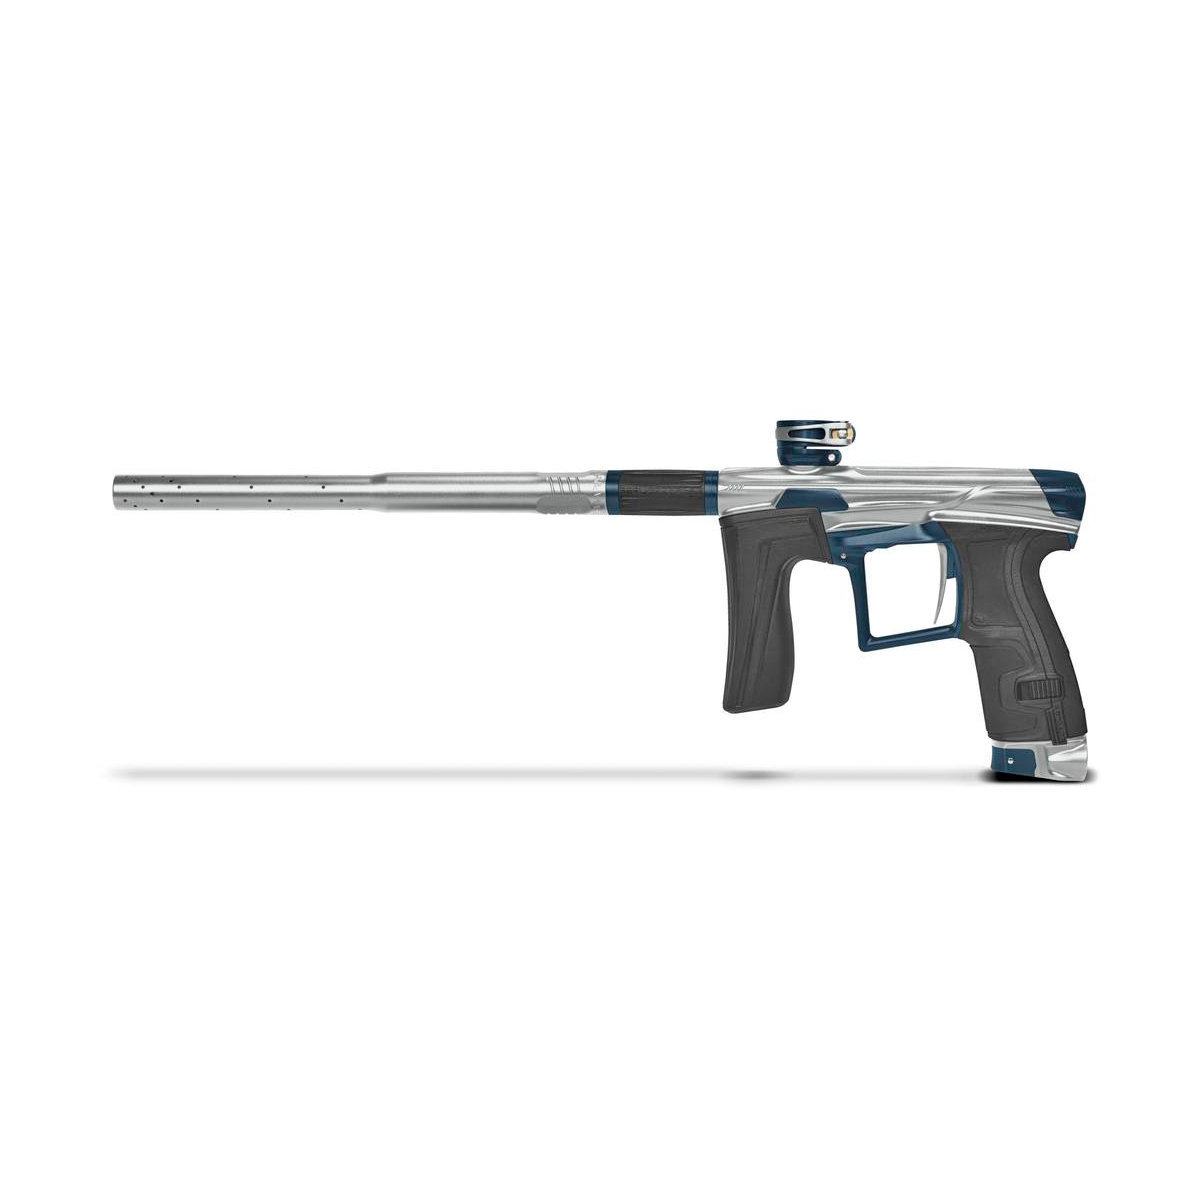 View larger image of Eclipse GEO 4 Paintball Gun